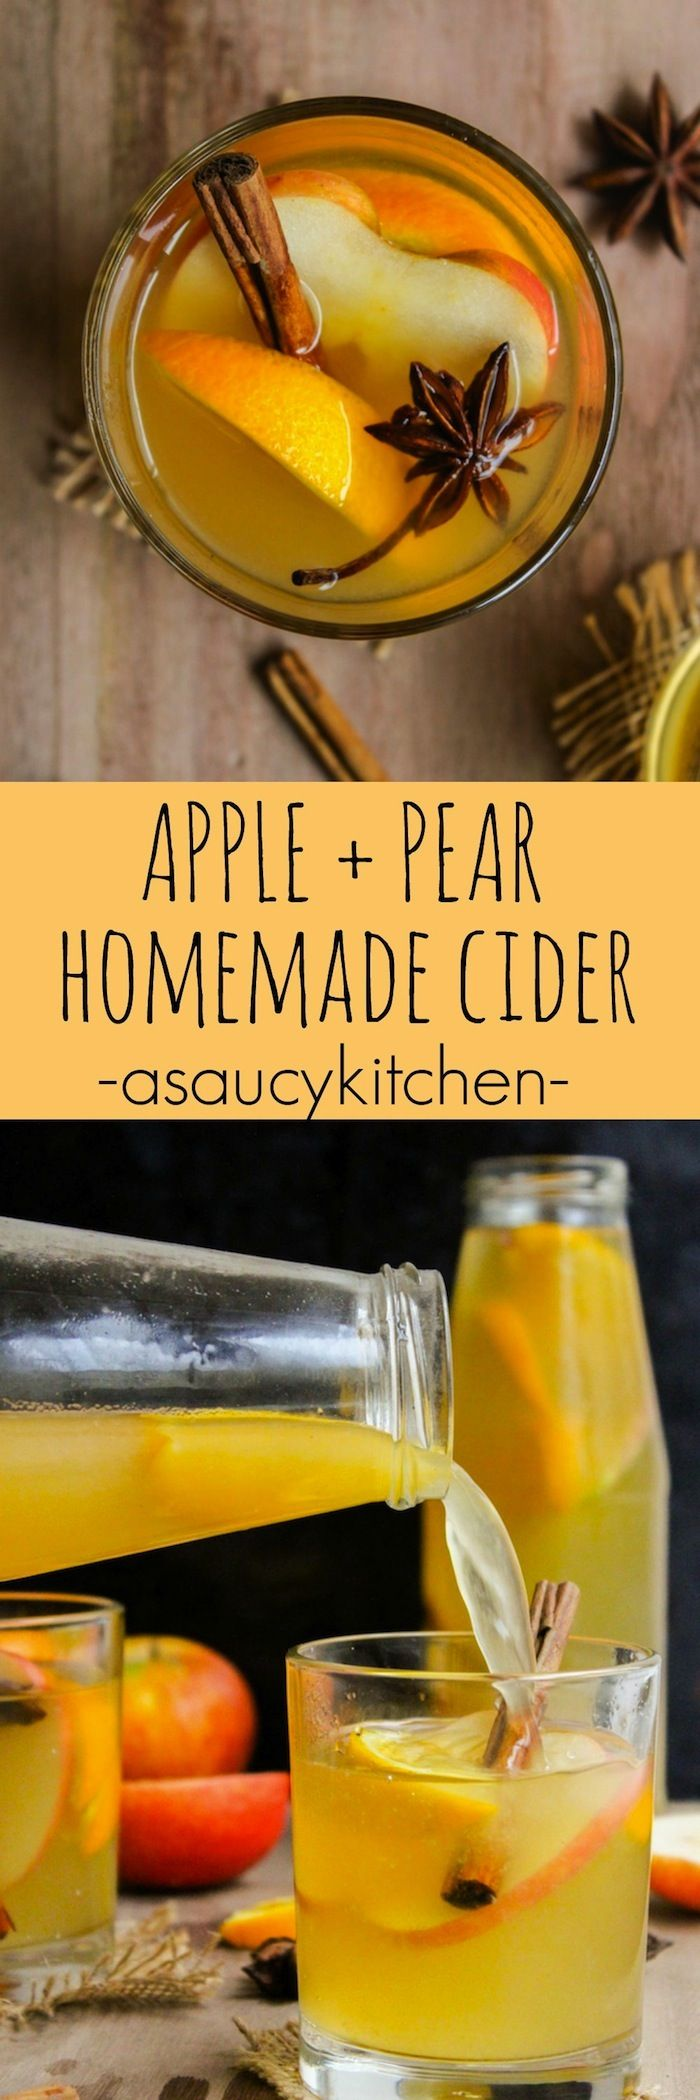 Fall in love with this apple pear cider made with fresh fruit and seasonal spices. Make in the crock pot and enjoy all day with the smell of cider brewing in the air!  @asaucykitchen